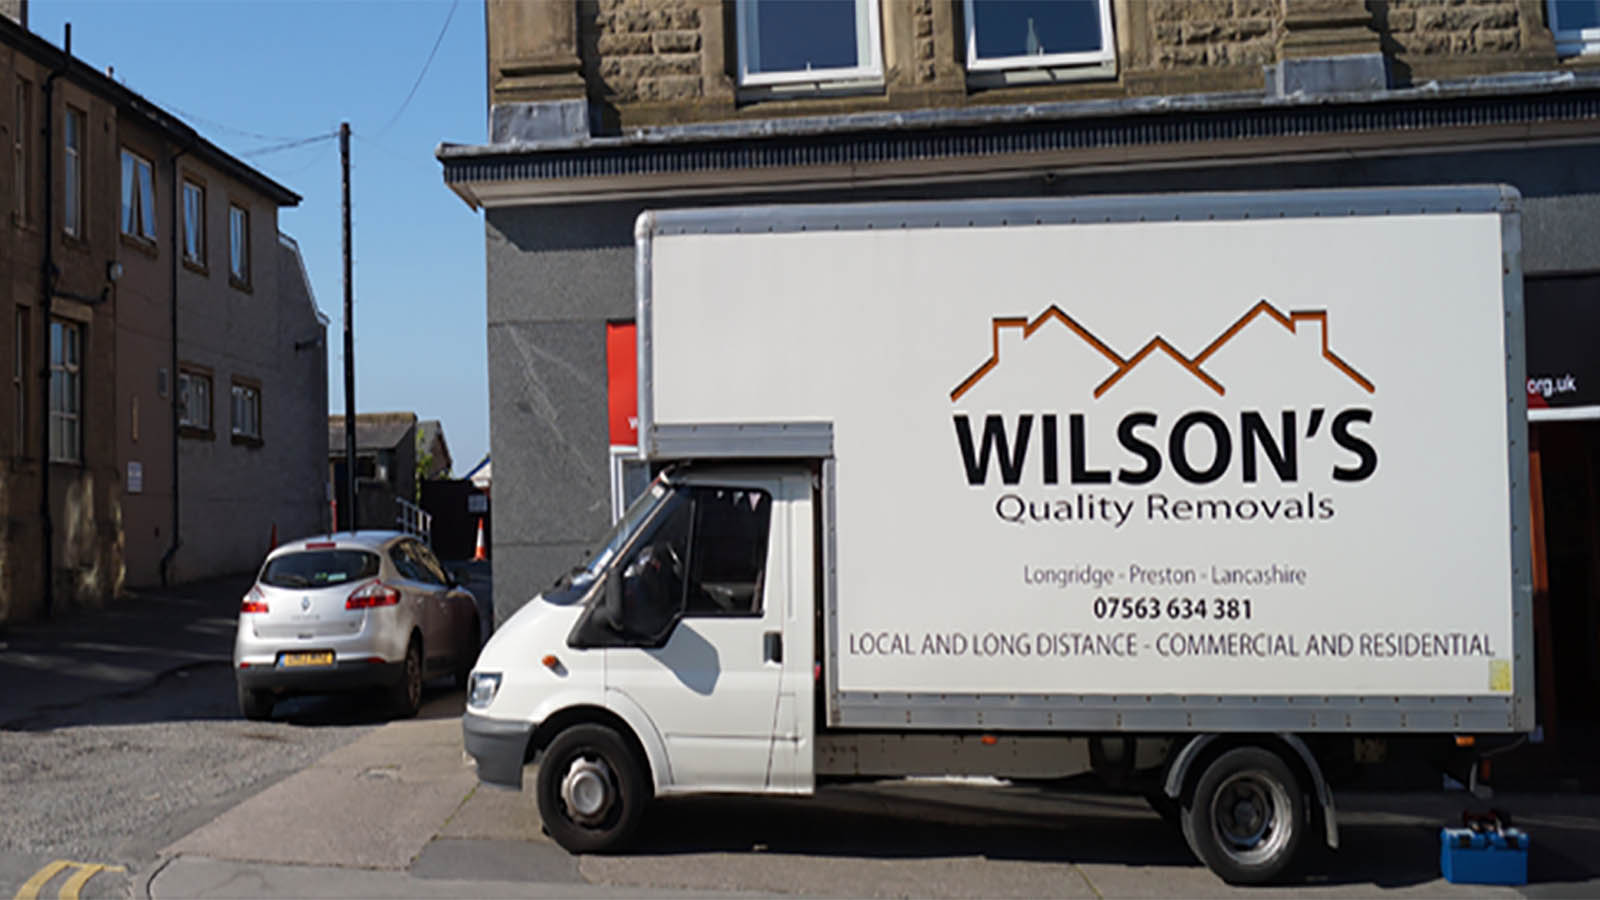 Wilson's Quality Removals